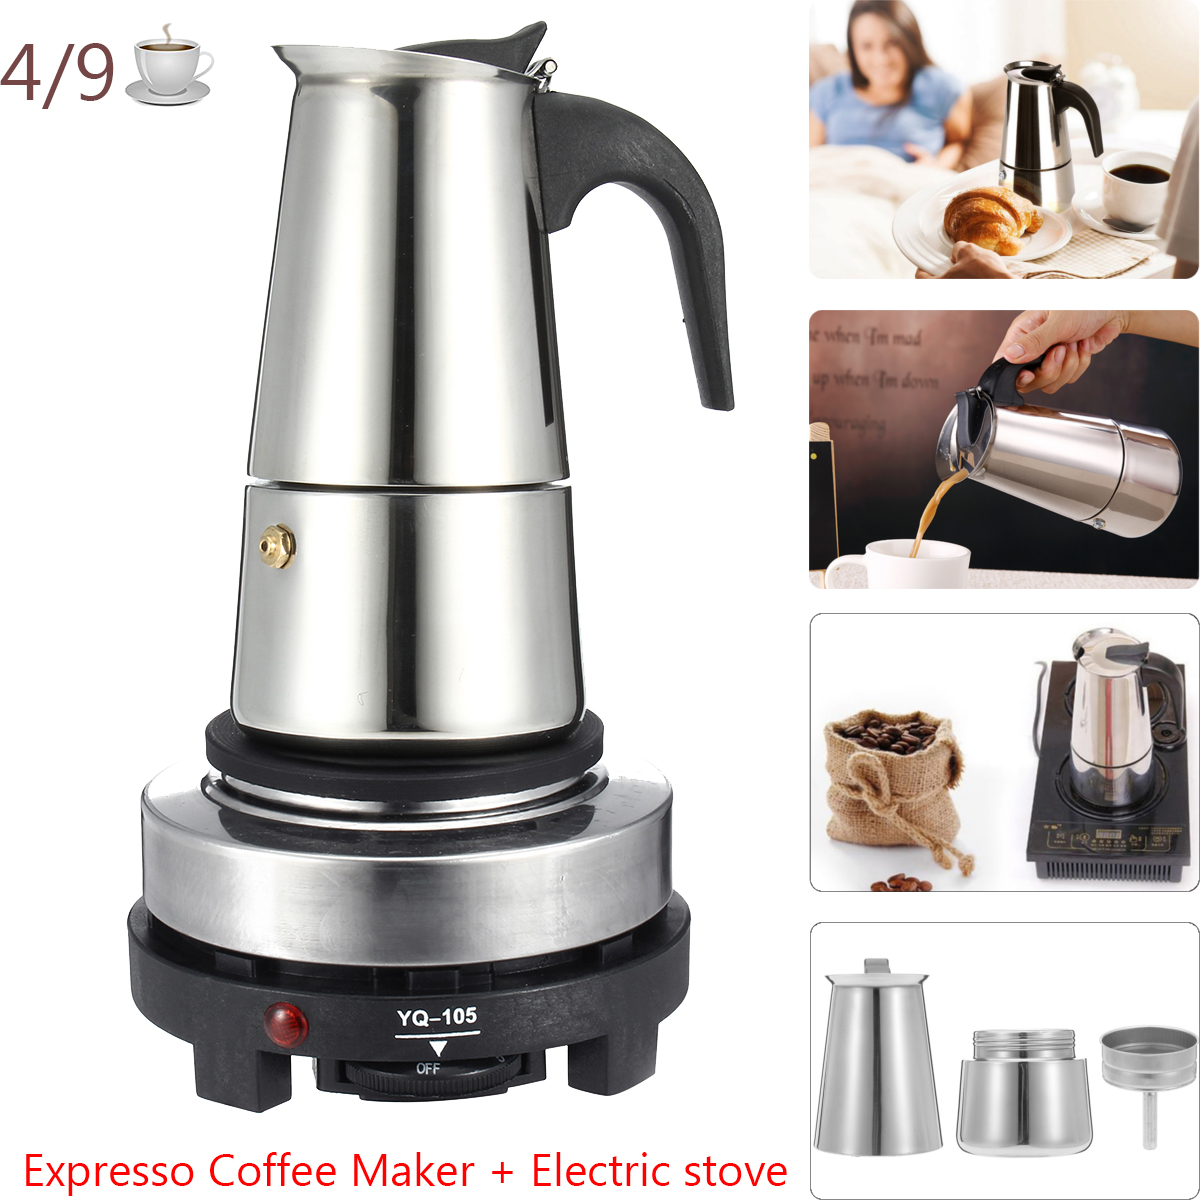 200 / 450ml Portable Espresso Coffee Maker Moka Pot Stainless Steel With Electric Cooker Filter Percolator Coffee Brewer Kettle